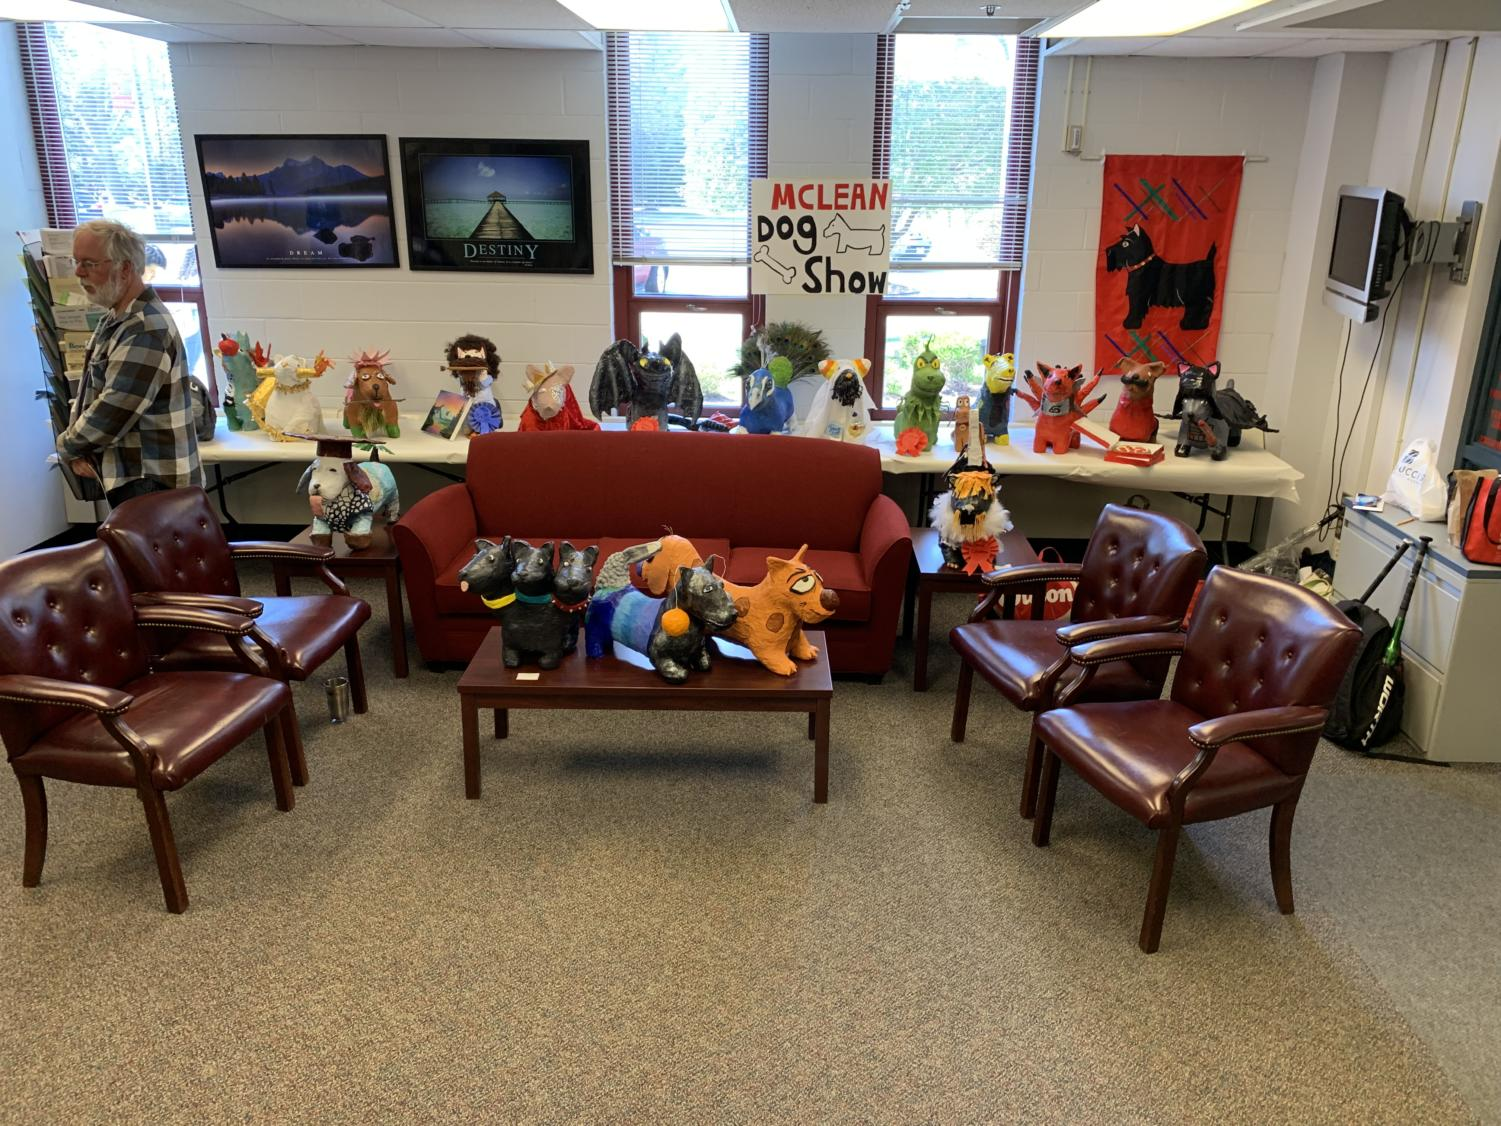 Dog show- Ceramics students created crazy dogs pieces to display for everyone to enjoy in the front office.